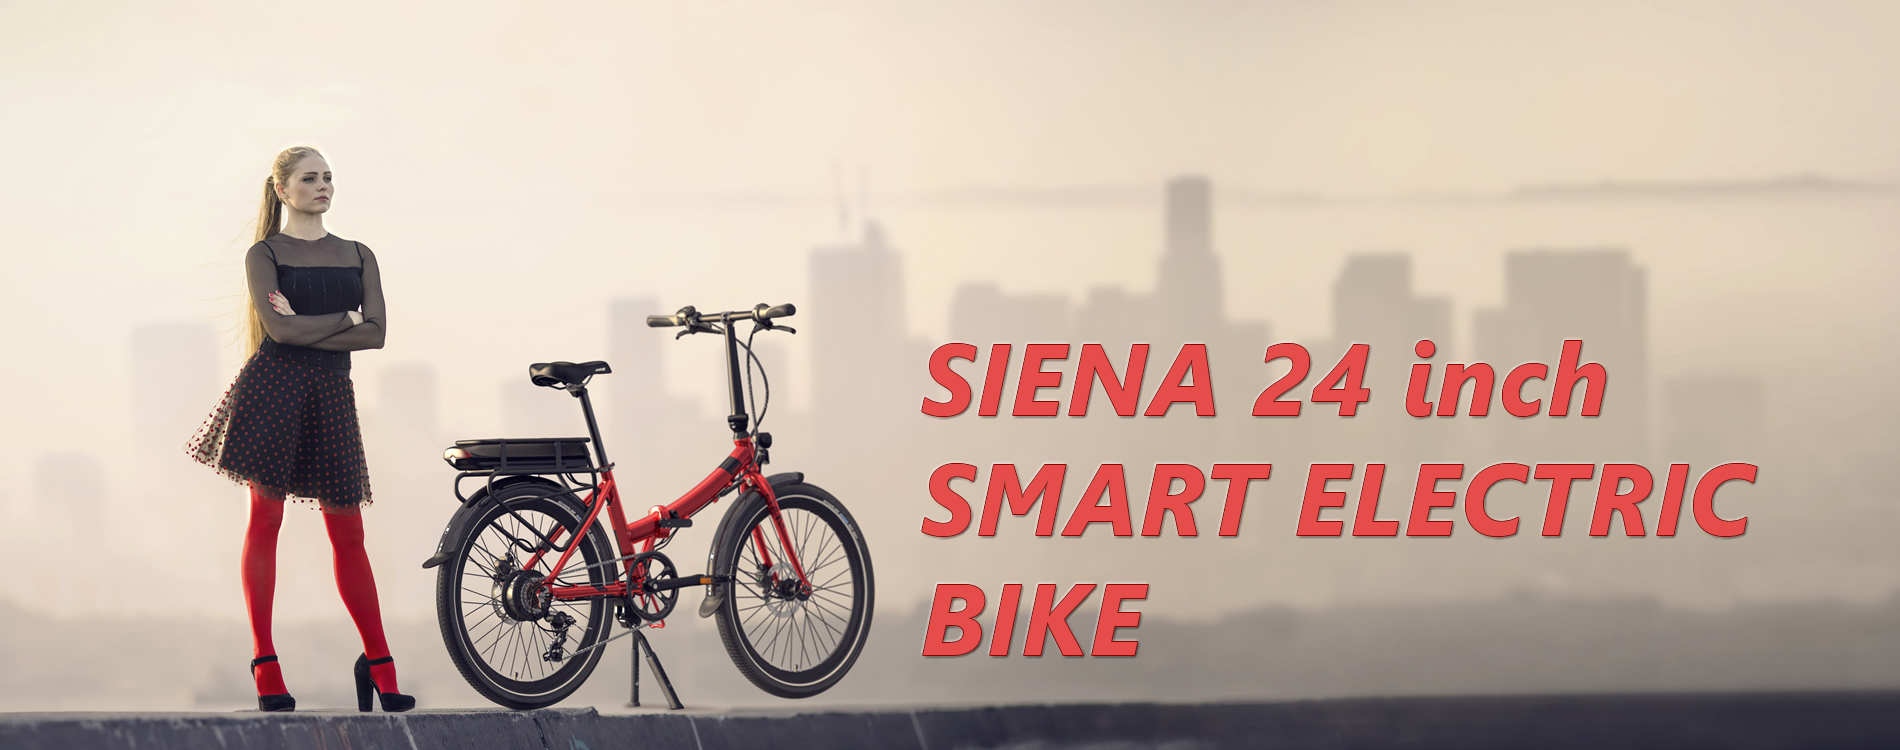 Siena Electric Bike - 24 inch